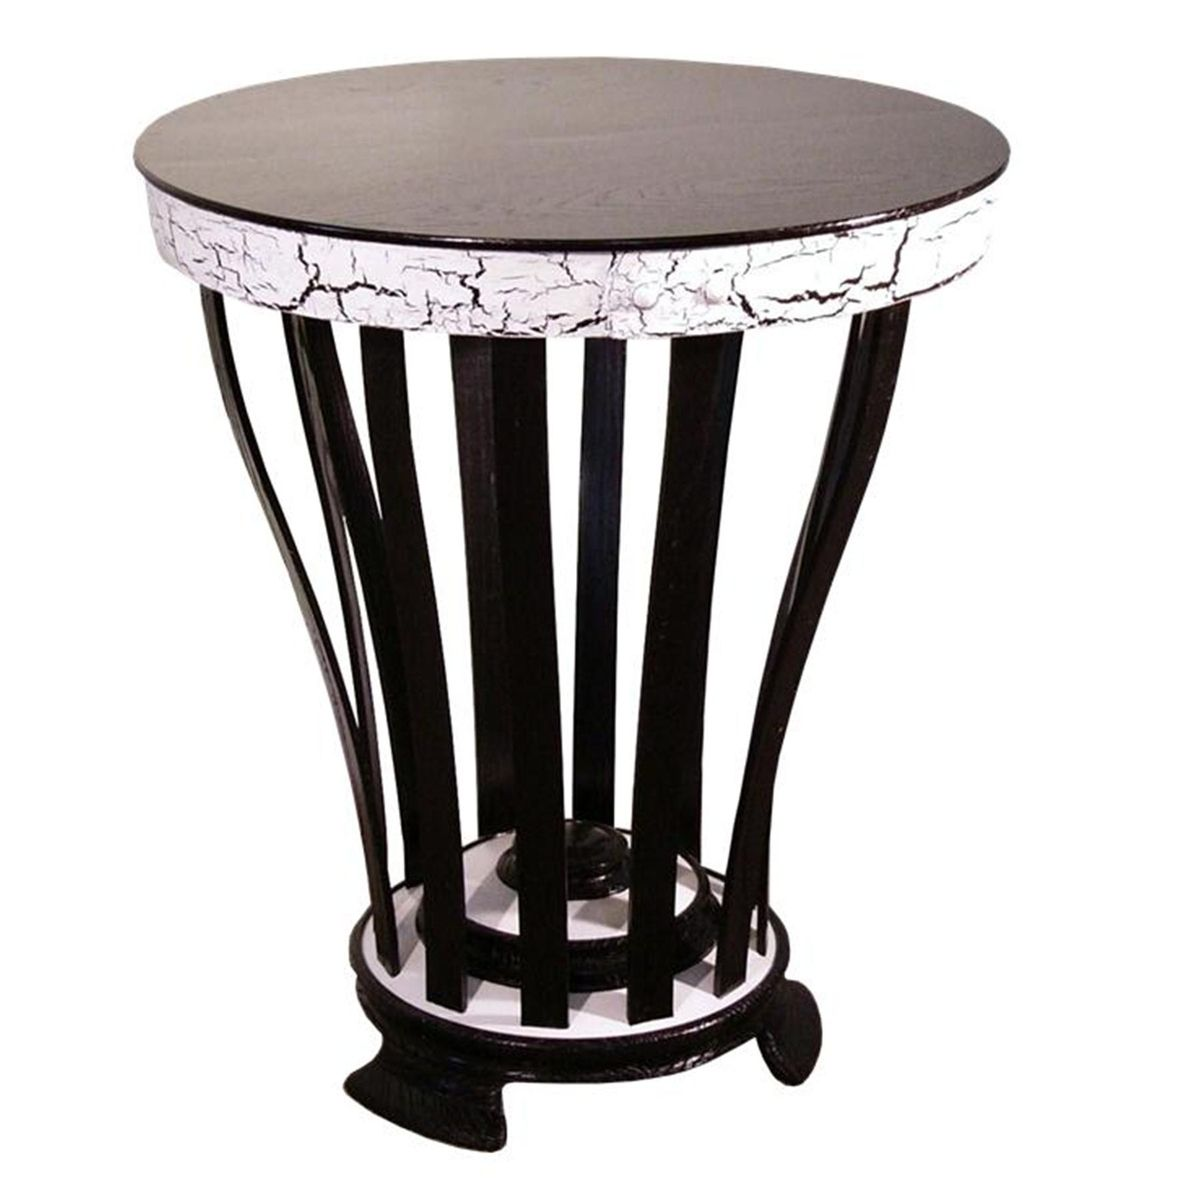 Custom Made Black White Round Side Table By Accent